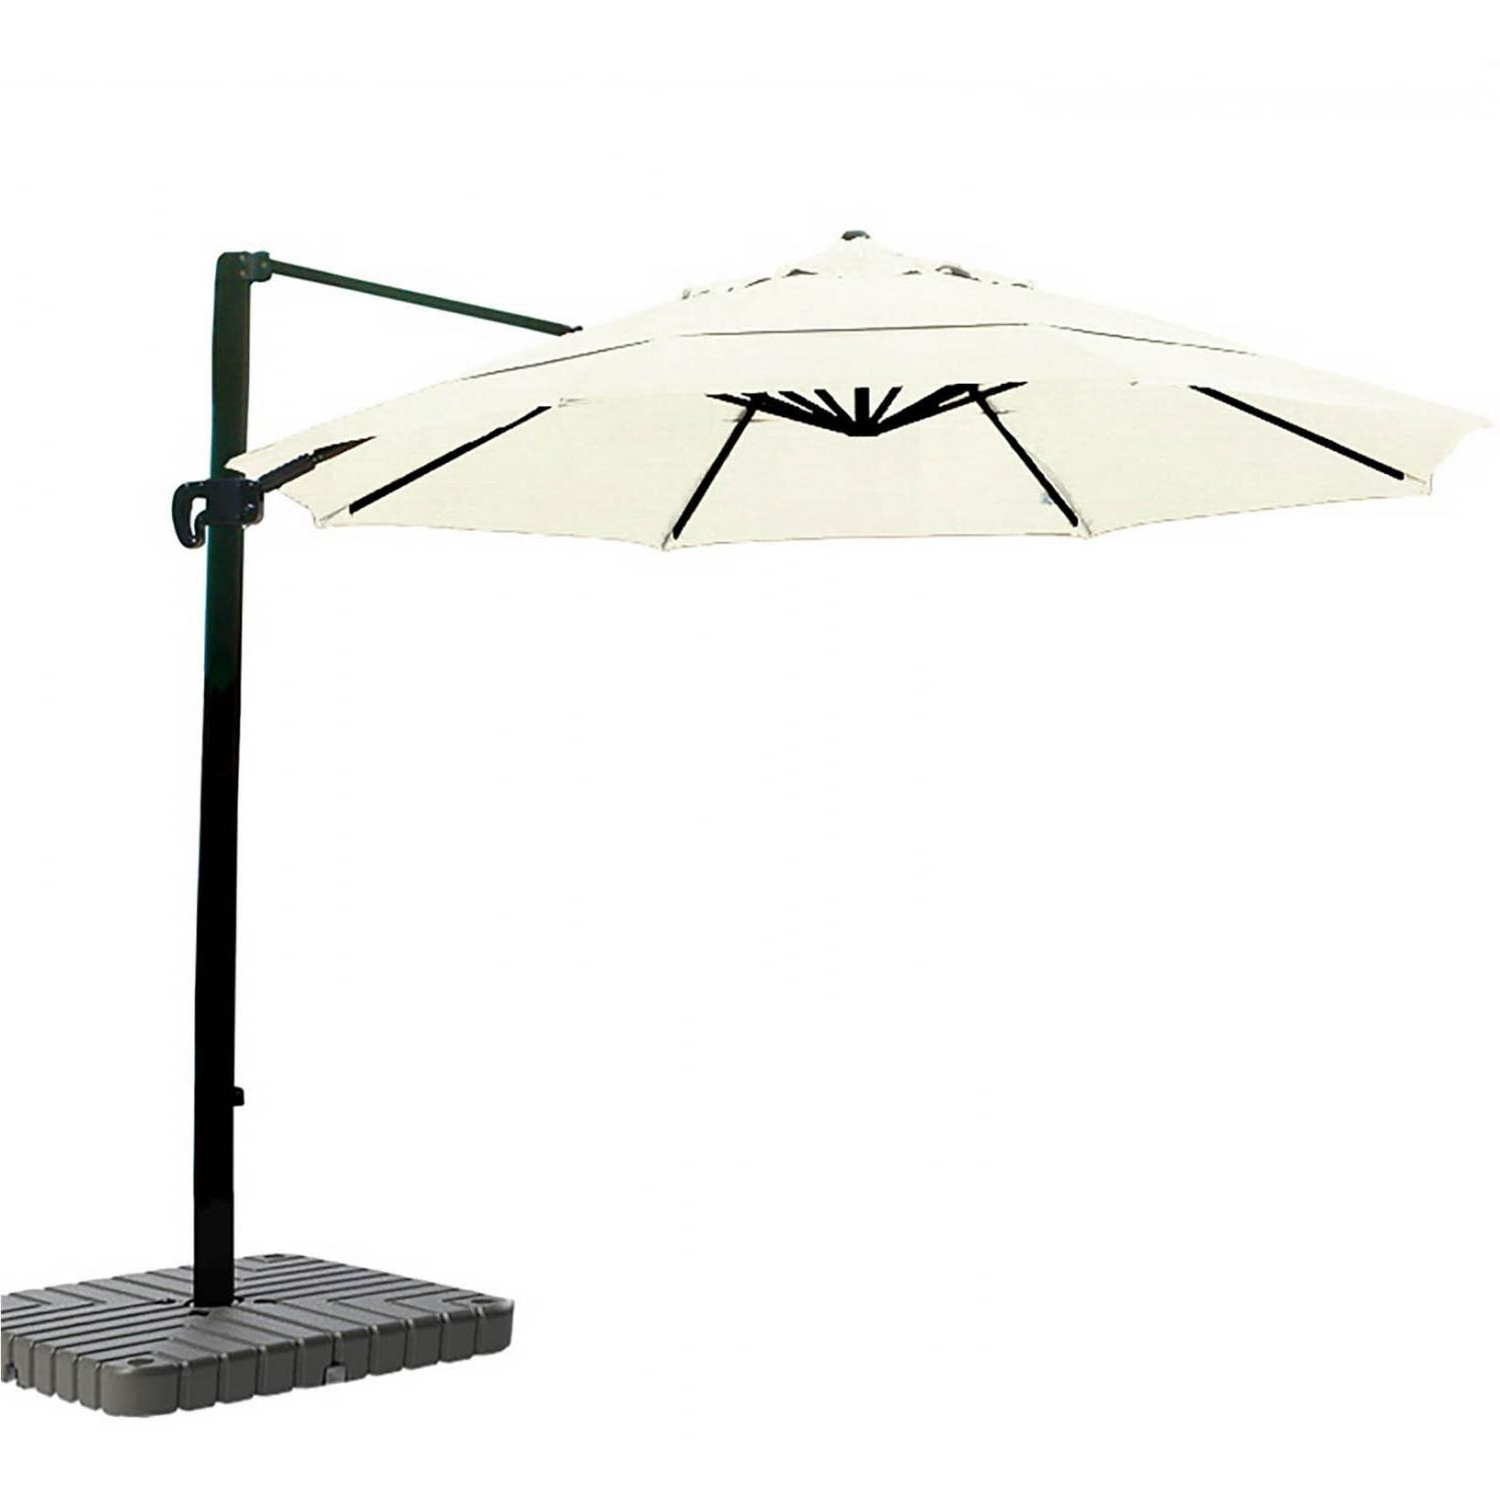 California Umbrella 11 Ft Octagonal Aluminum Multi Position Tilt For Well Known 11 Ft (View 6 of 20)